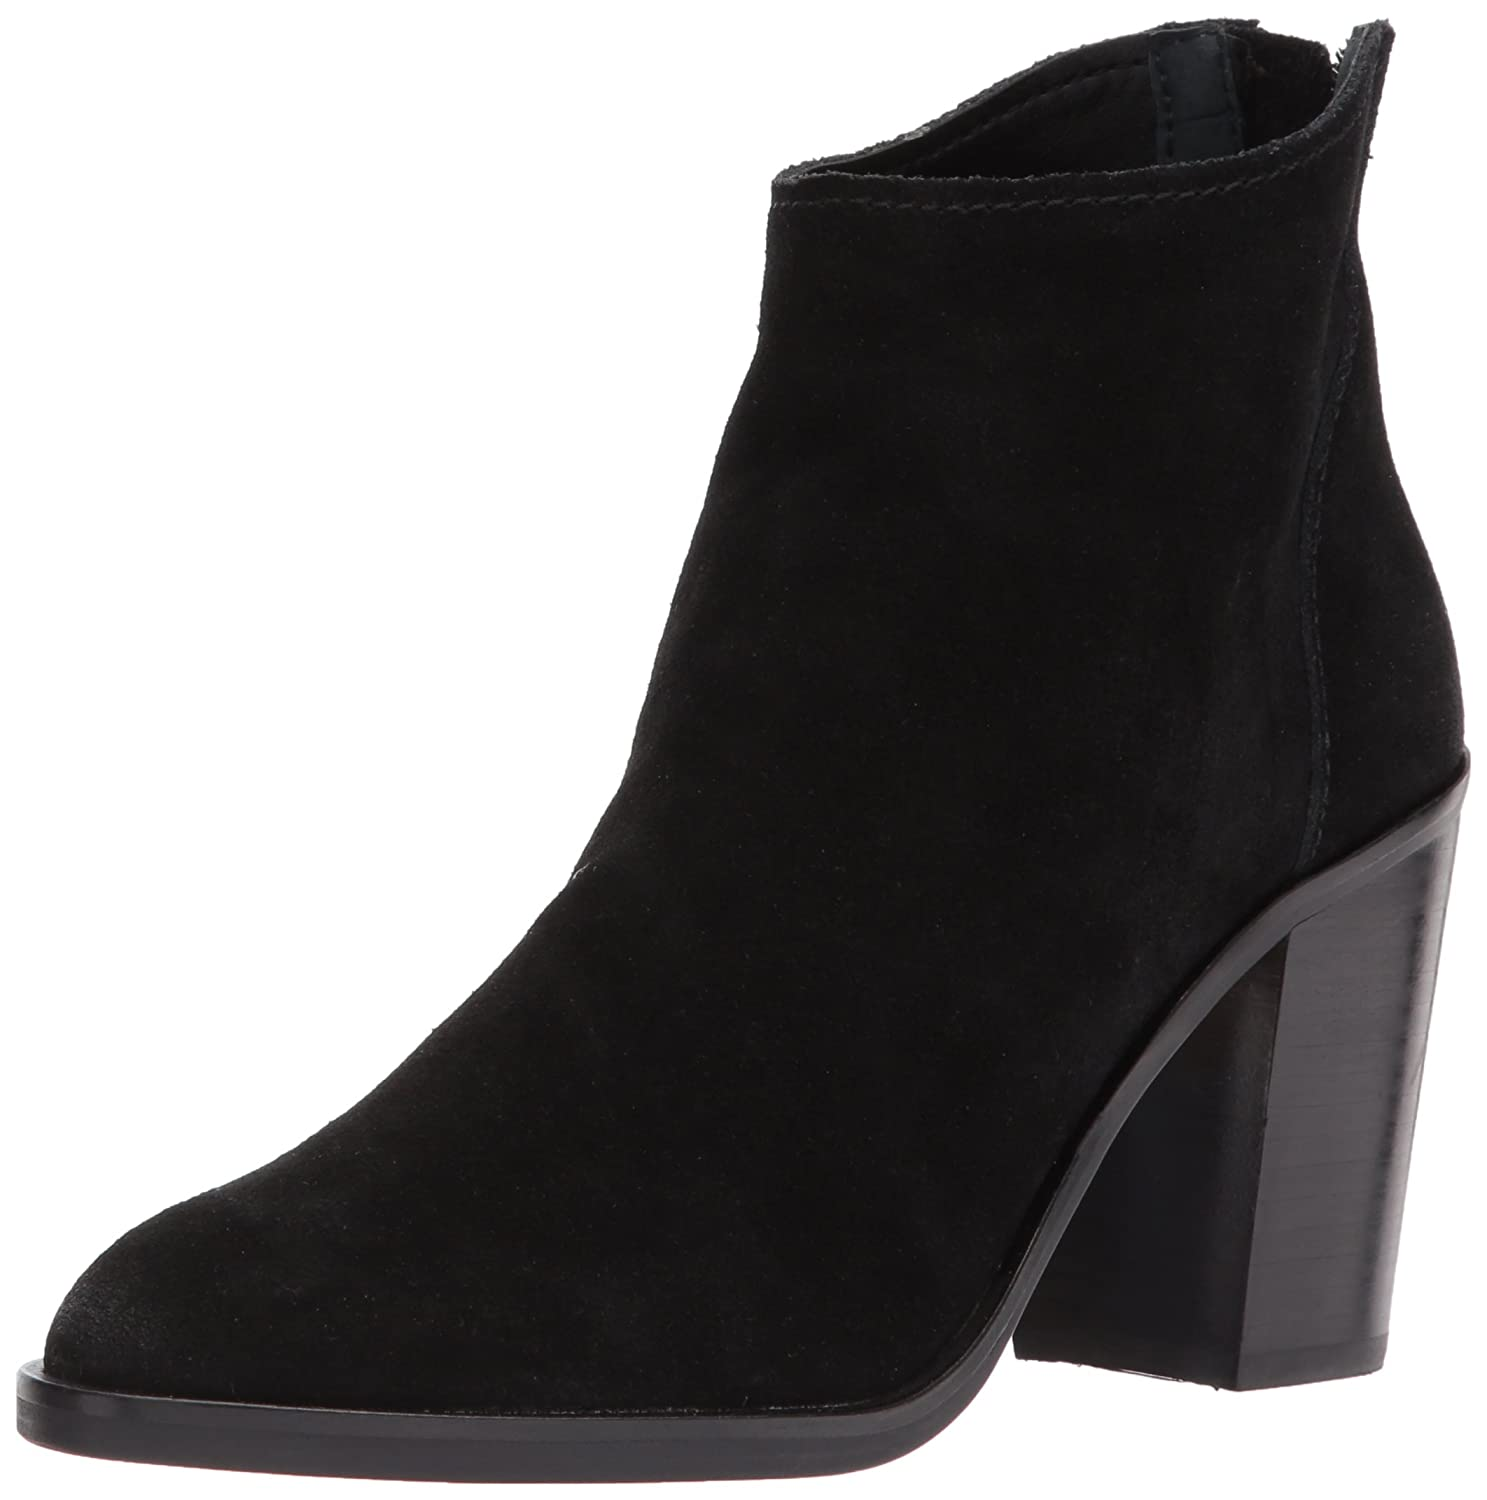 Dolce Vita Women's Stevie Ankle Boot B0758HFMY7 12 B(M) US|Black Suede